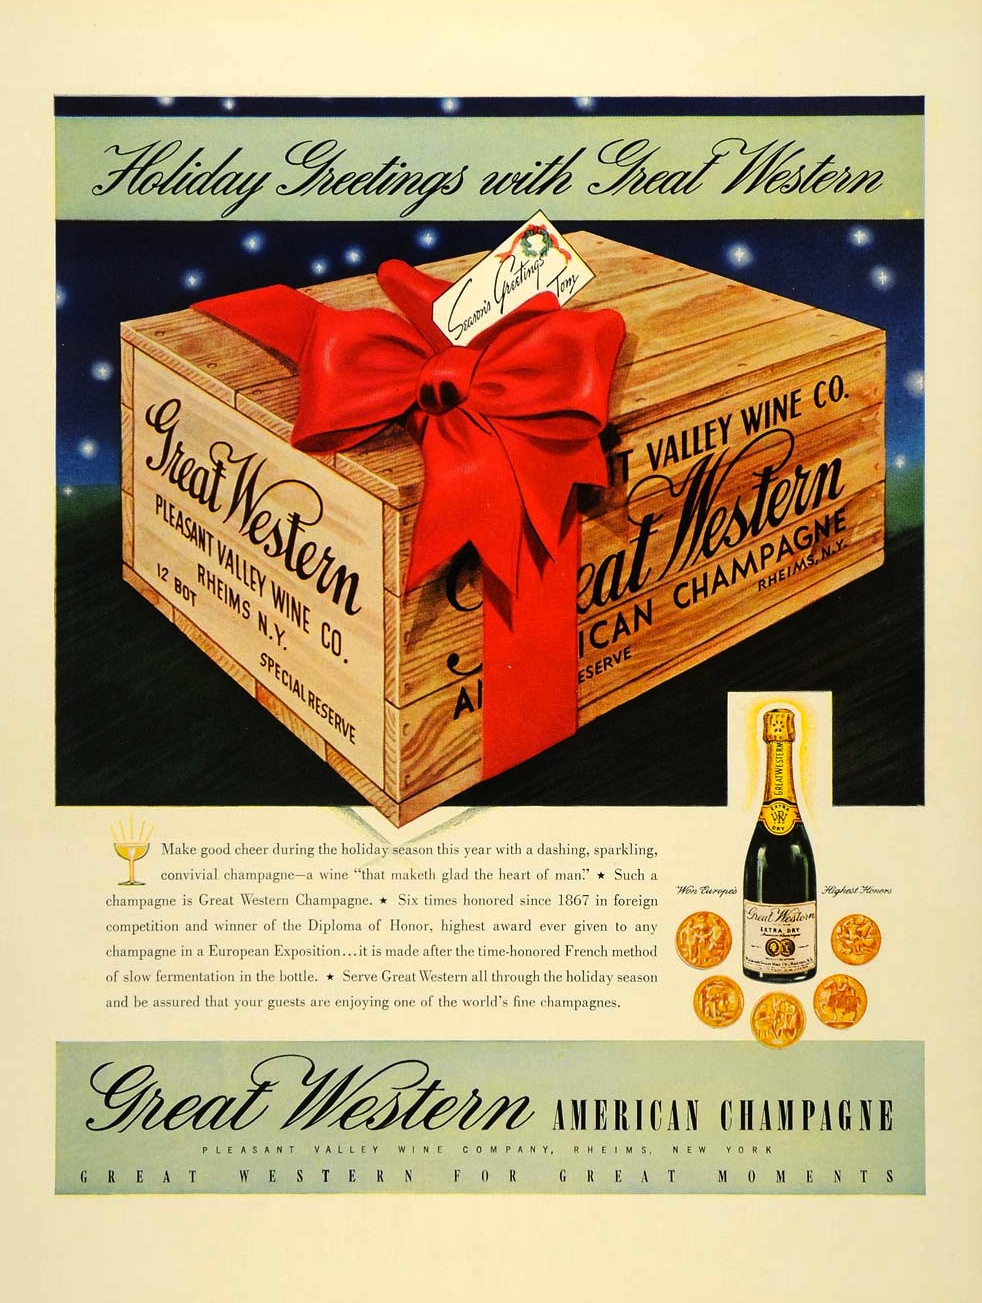 """Great Western """"American Champagne"""", 1937"""